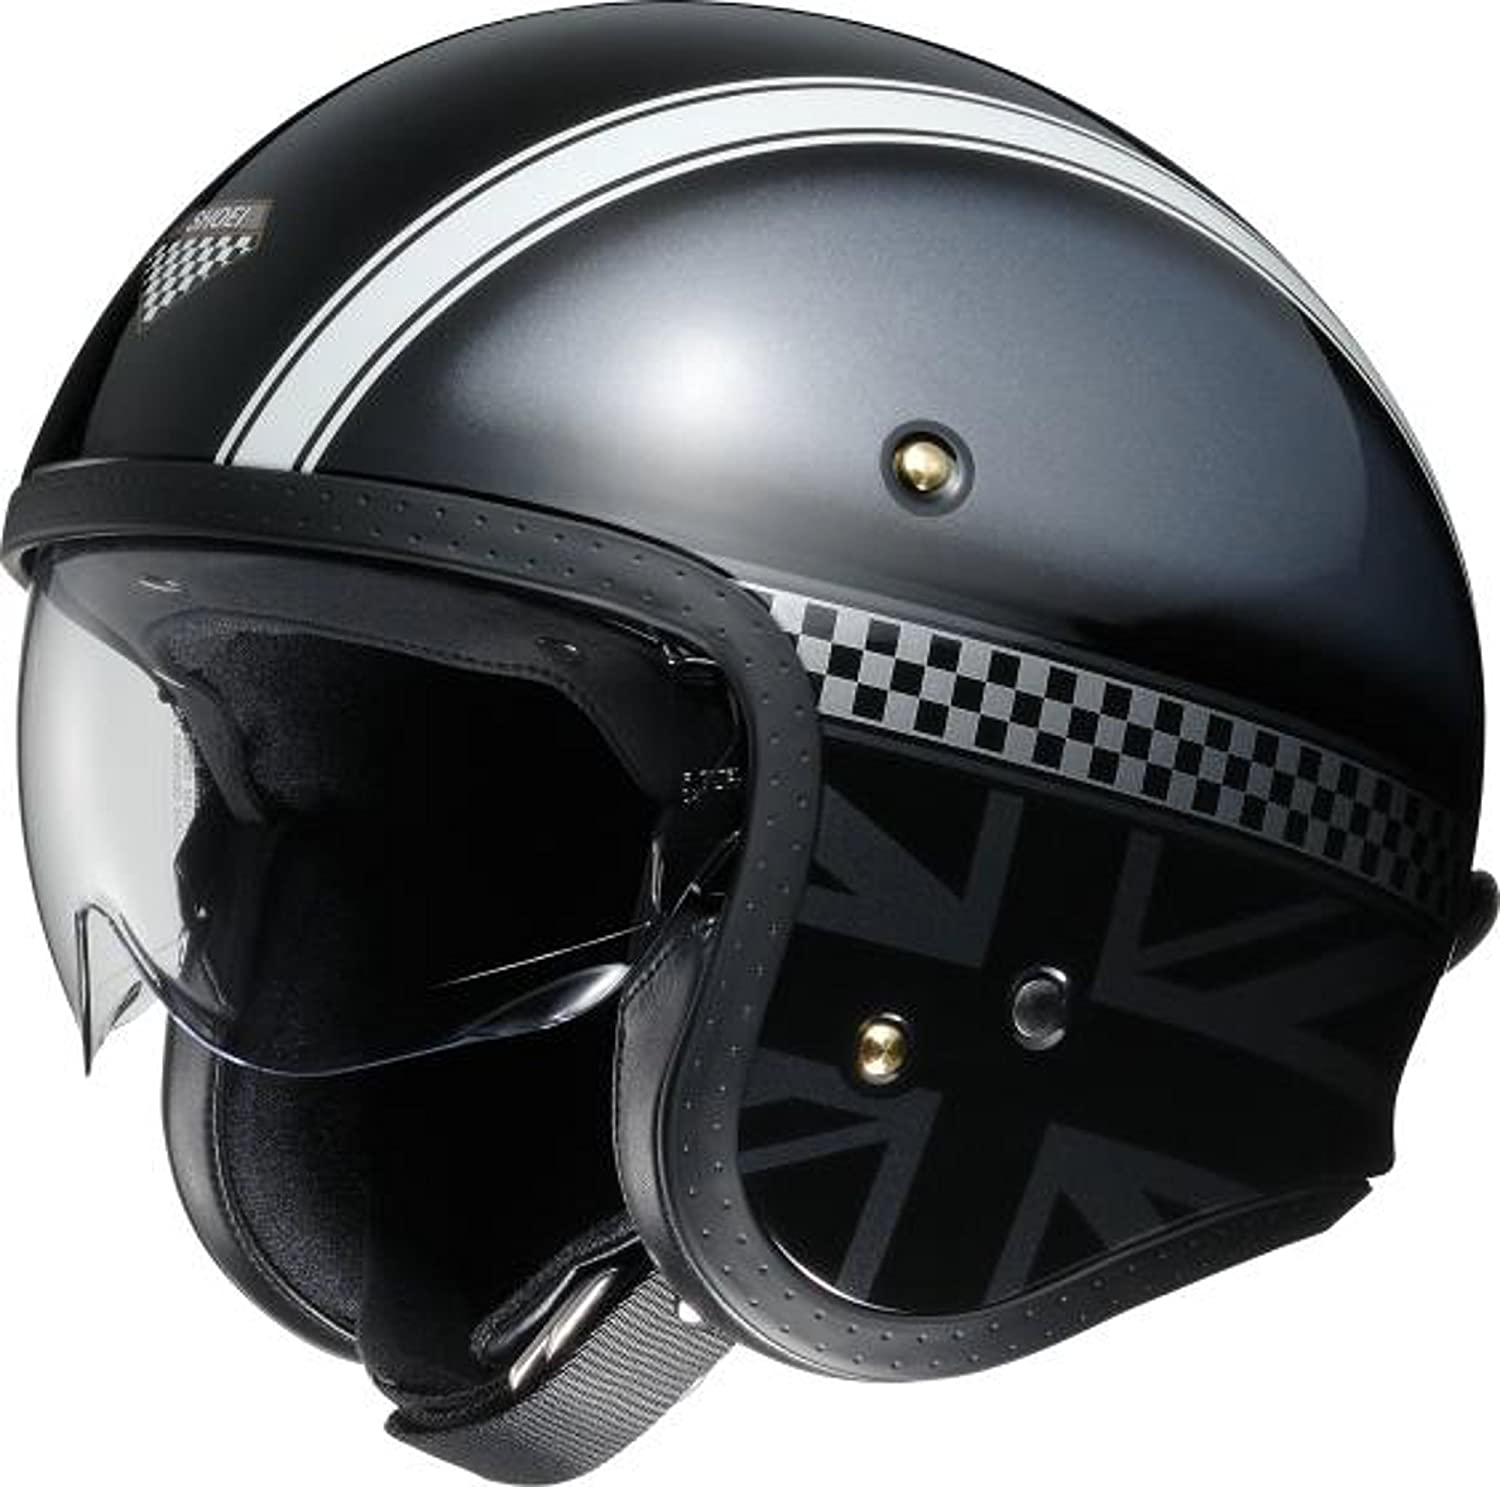 ショウエイ(SHOEI) J・O HAWKER (ホーカー) TC-5 BLACK/SILVER XL (頭囲 61cm)